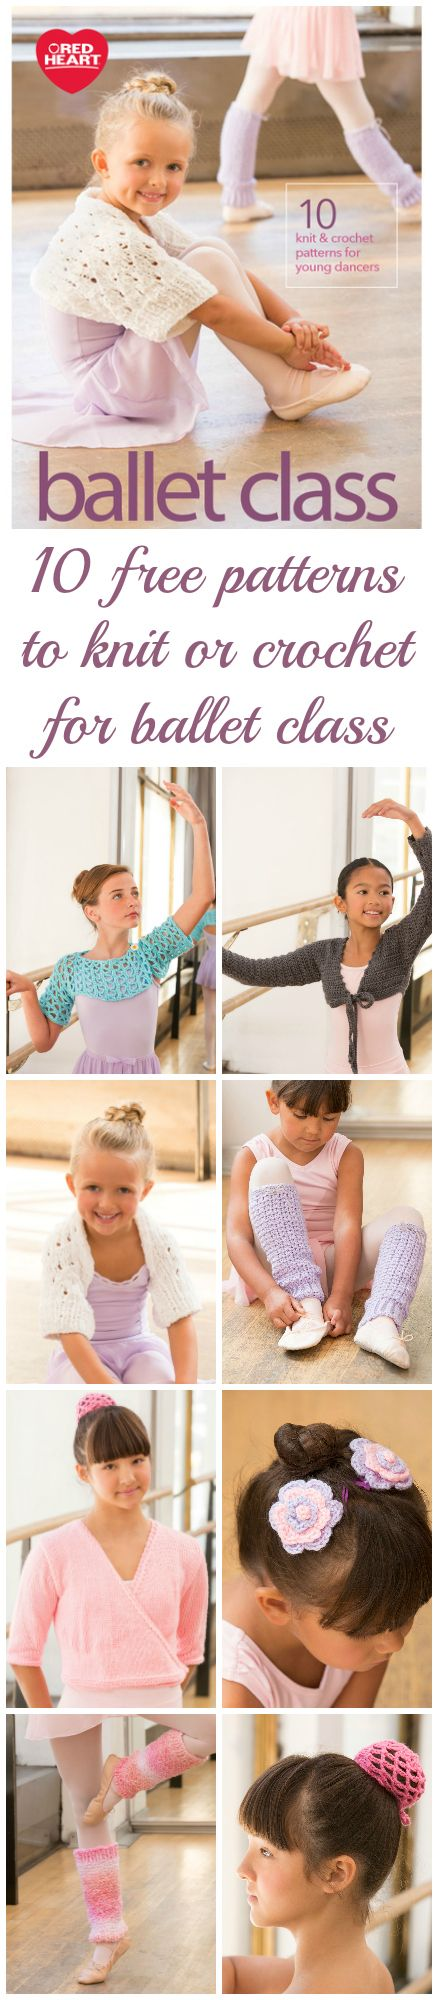 10 pretty patterns to knit or crochet for ballet class and young dancers.  Free e-book download.